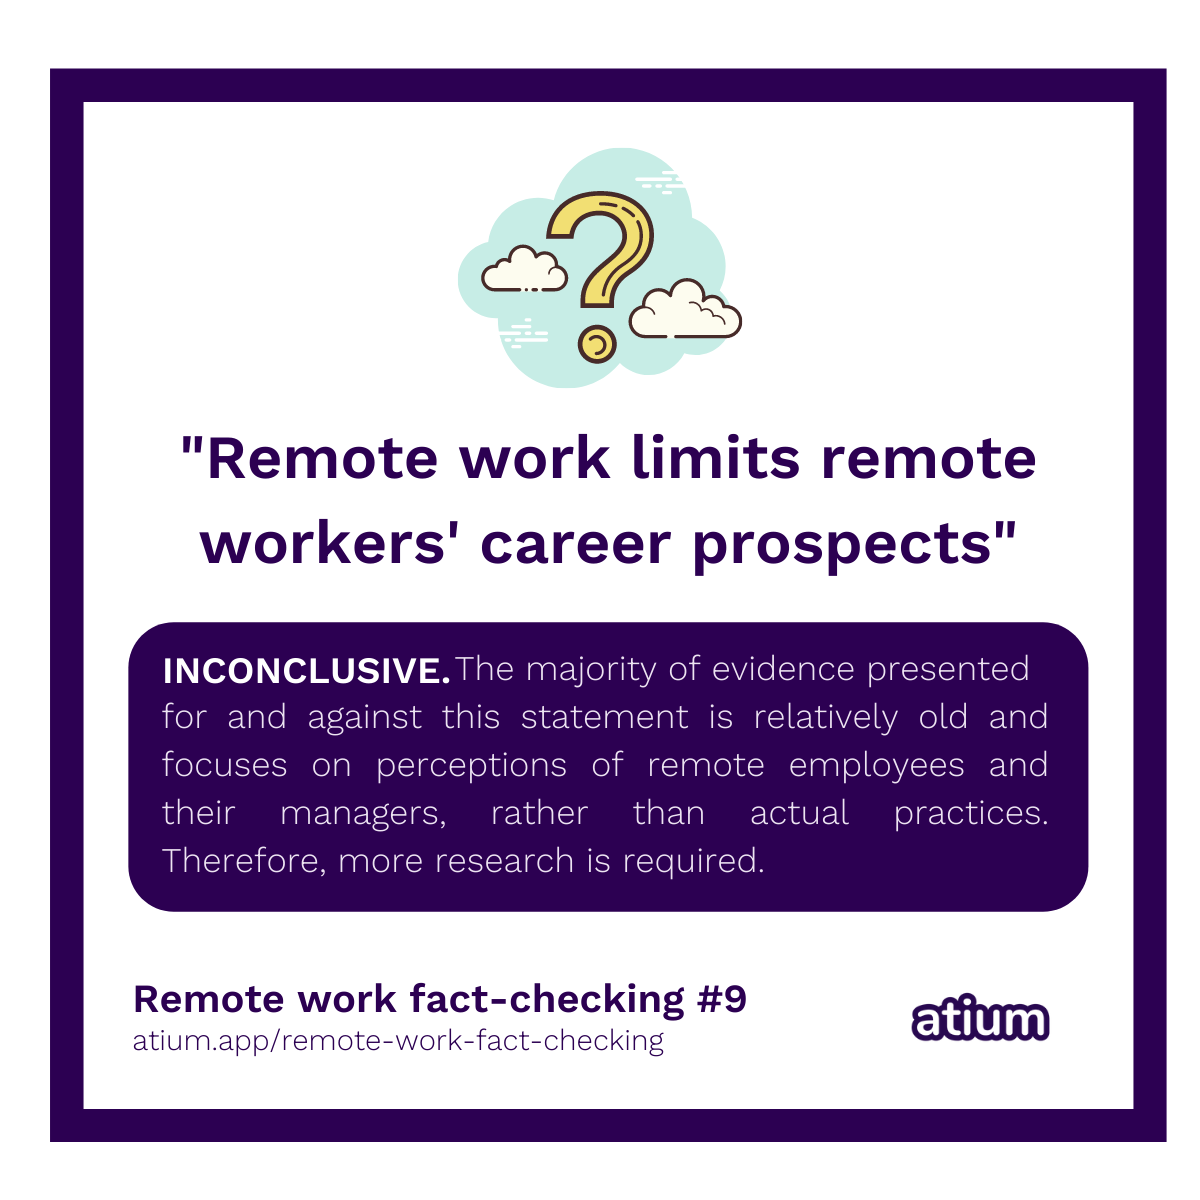 Remote work limits remote workers' career prospects